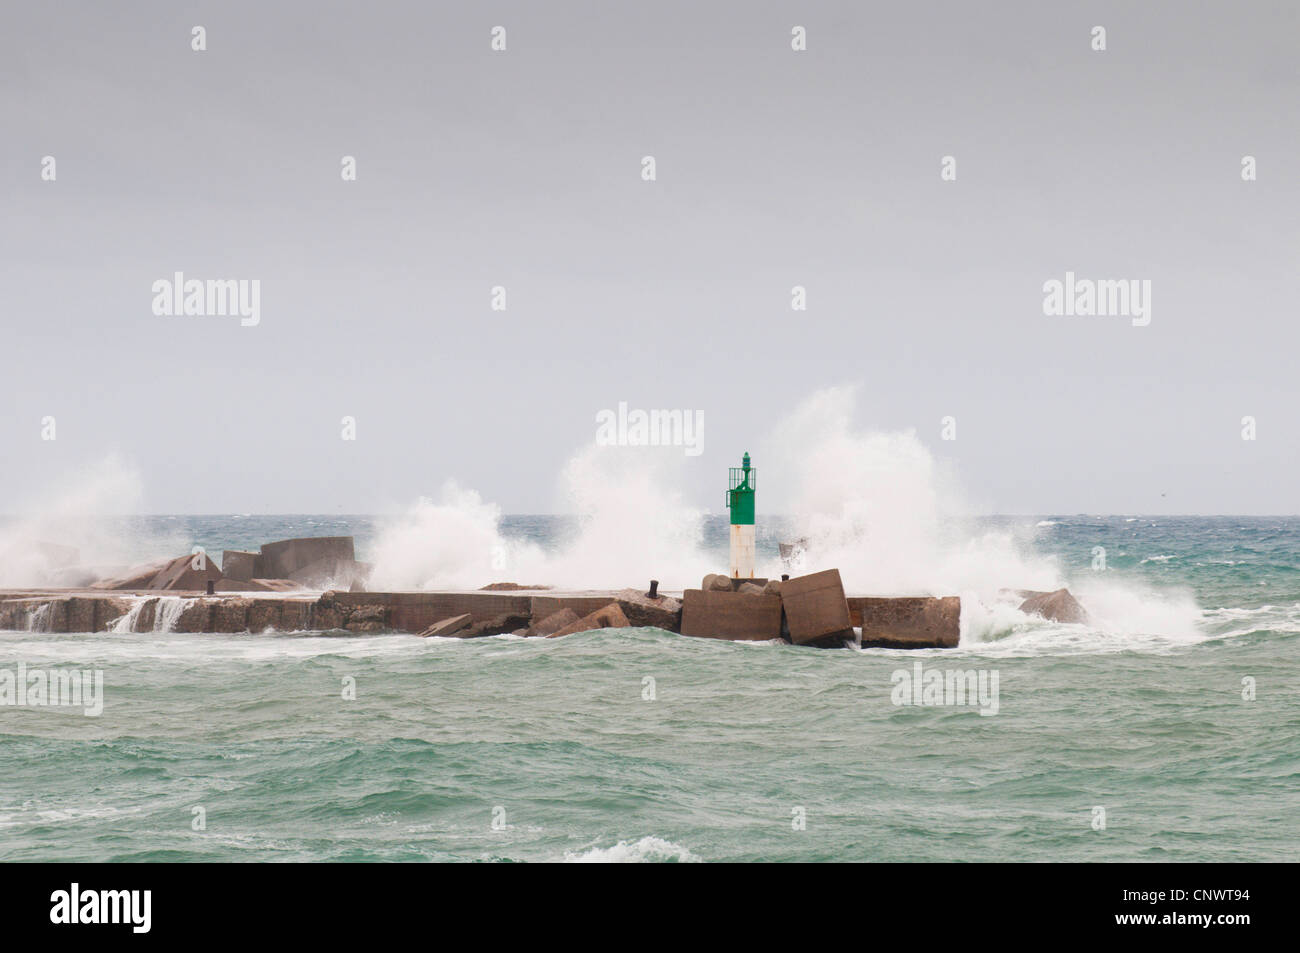 breakwaters with beacon in stormy surge, France, Languedoc-Roussillon, Ste - Stock Image